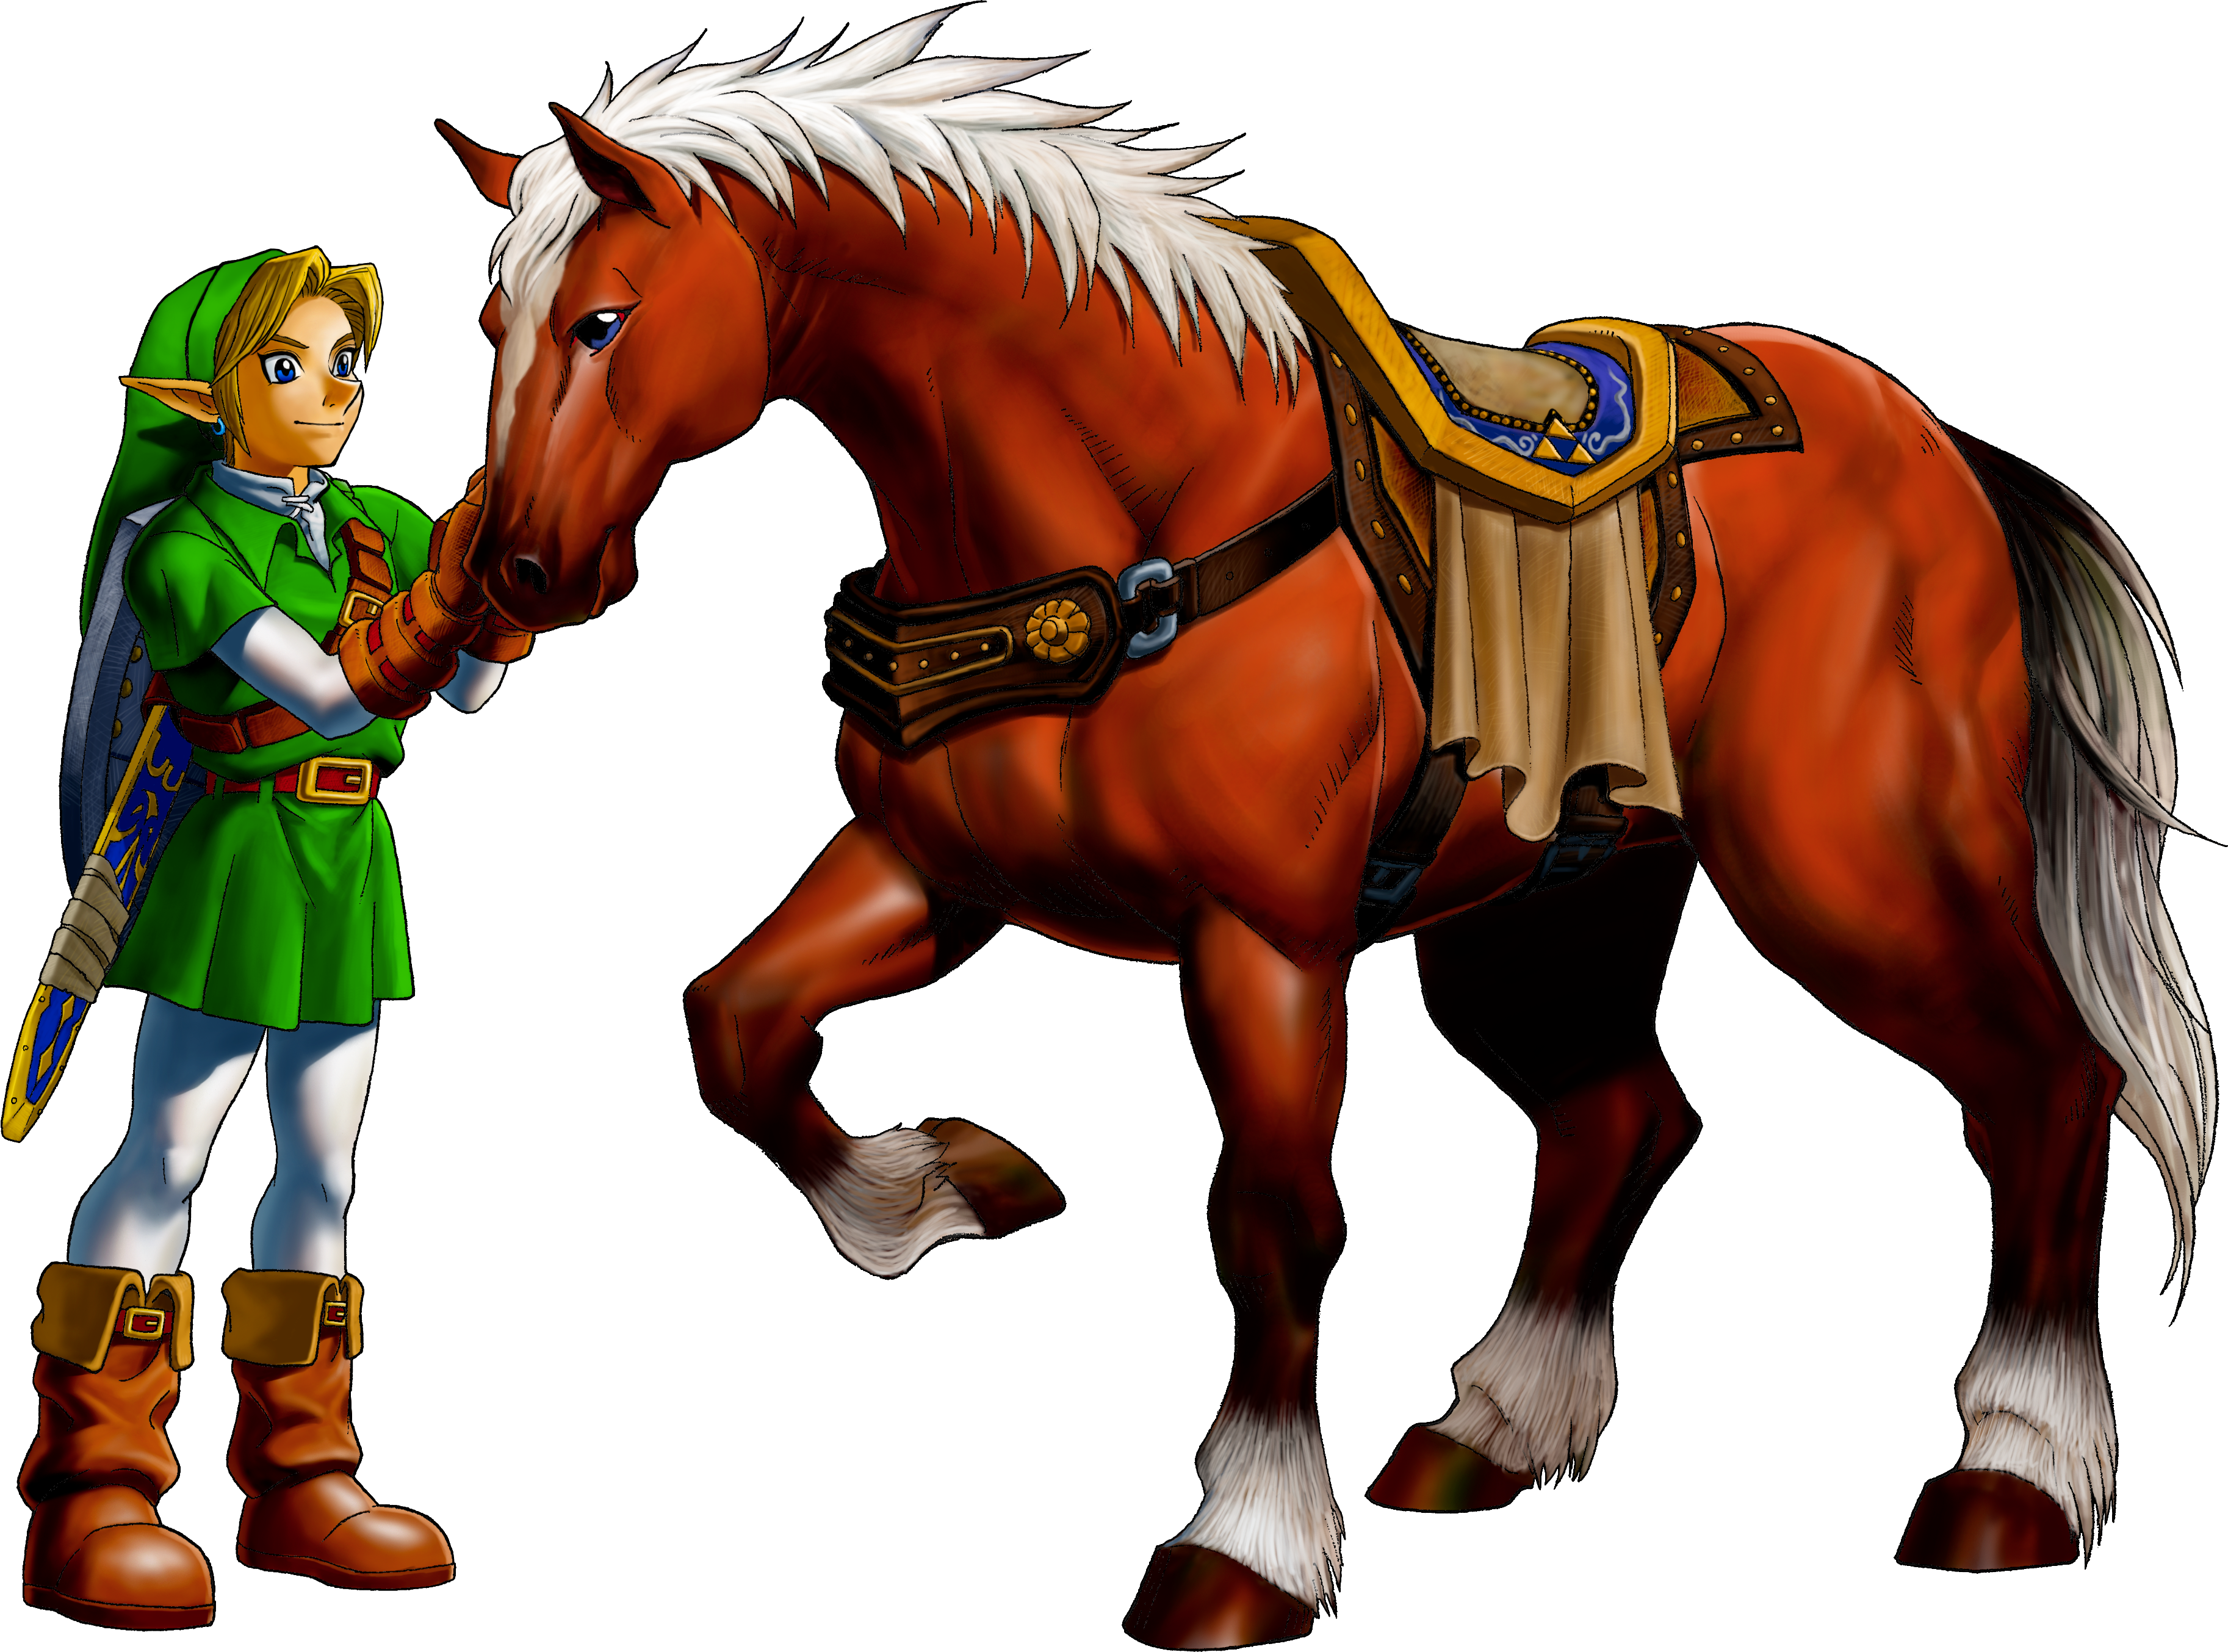 Wonderful Wallpaper Horse Fairy - Link_and_Epona_(Ocarina_of_Time)  Graphic_634679.png